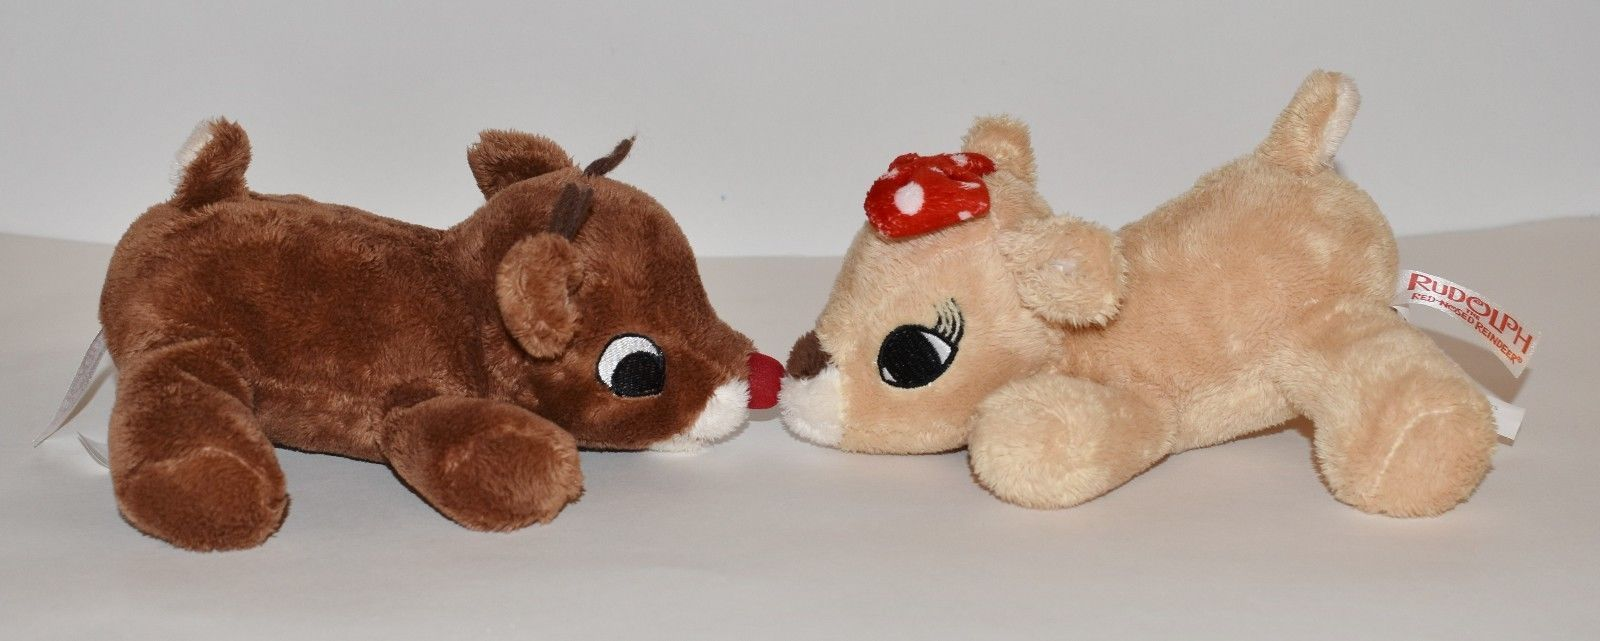 """Plush Rudolph The Red Nosed Reindeer & Girlfriend Clarice Deer Small 7"""" Toys"""